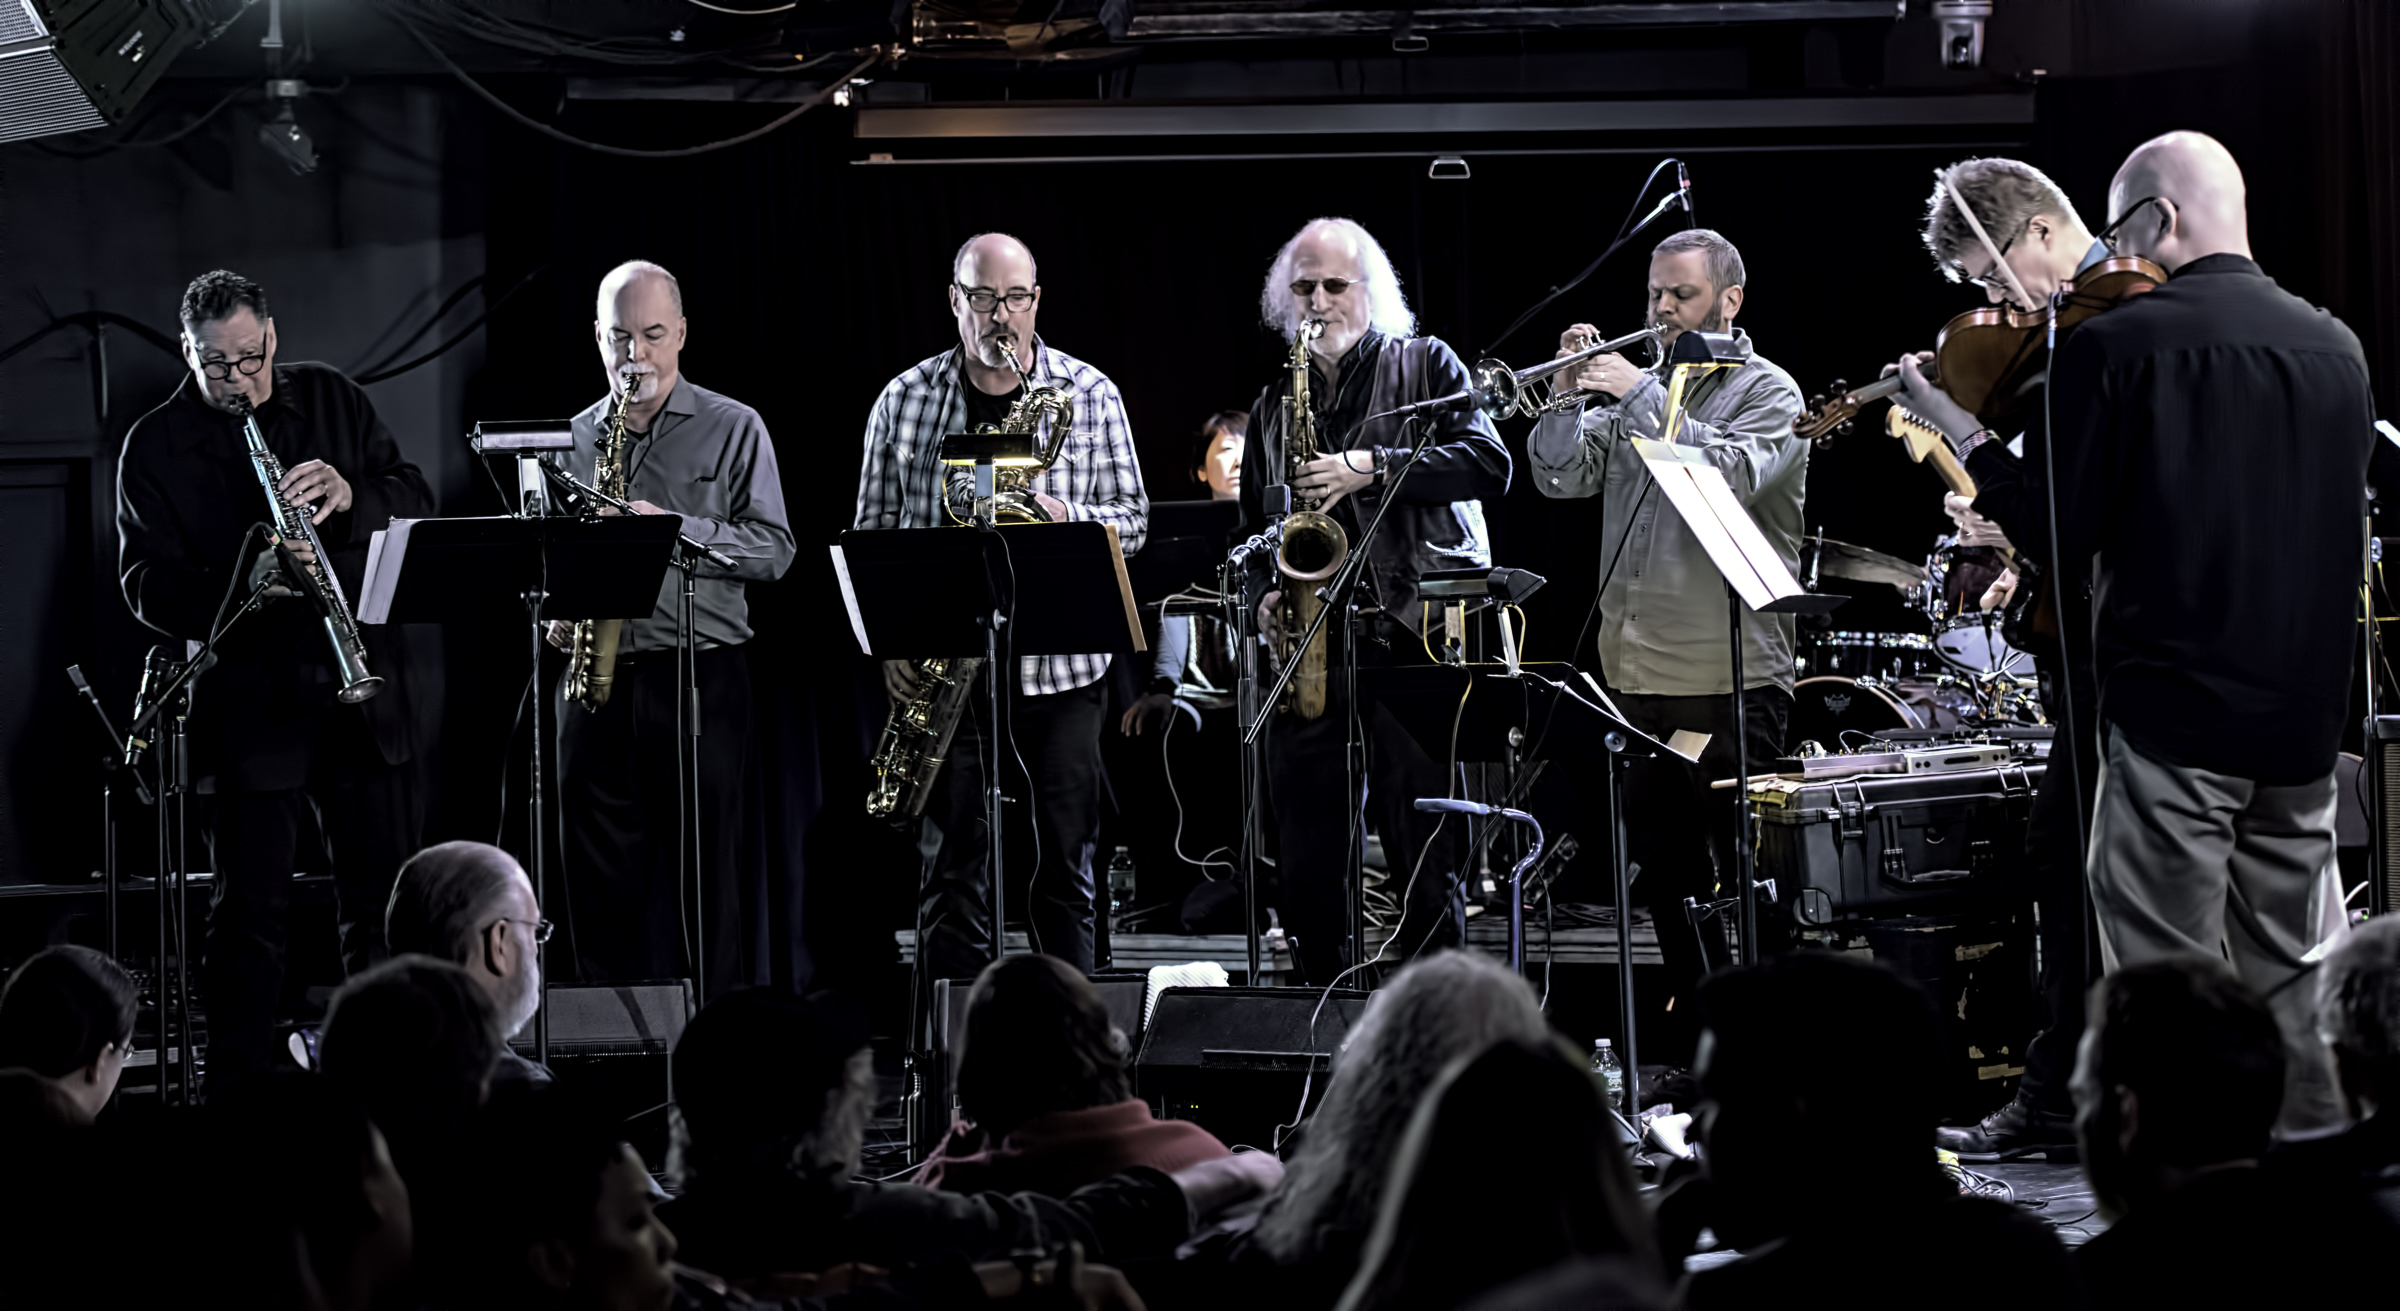 Bruce Ackley, Steve Adams, Jon Raskin, Larry Ochs, Nate Wooley, Nels Cline, Jason Kao Hwang with Rova's Electric Ascension at the NYC Winter Jazzfest 2016